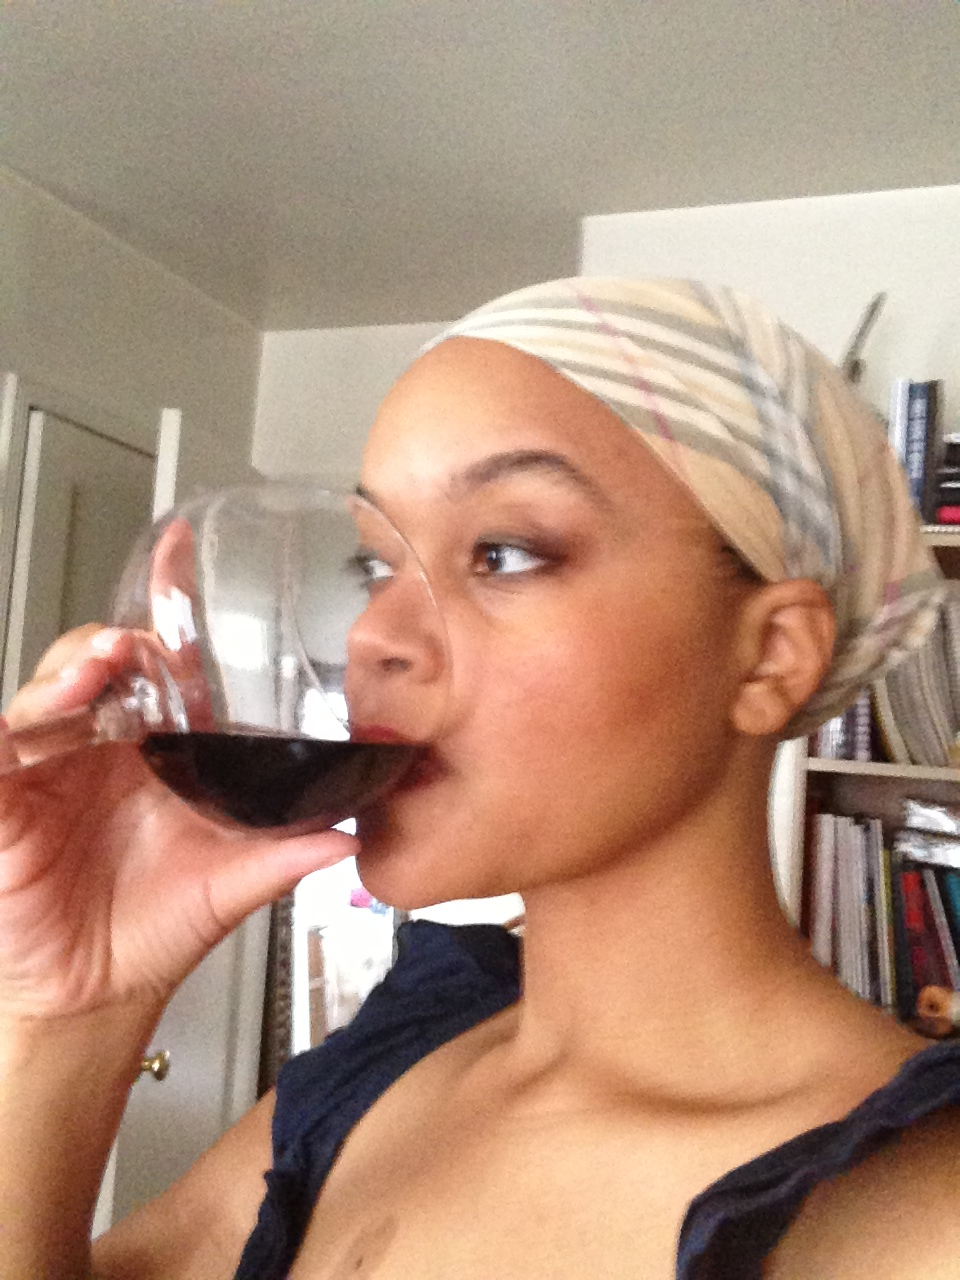 Classy BlackGirl in Her Blogging Dress Drinking a Zin